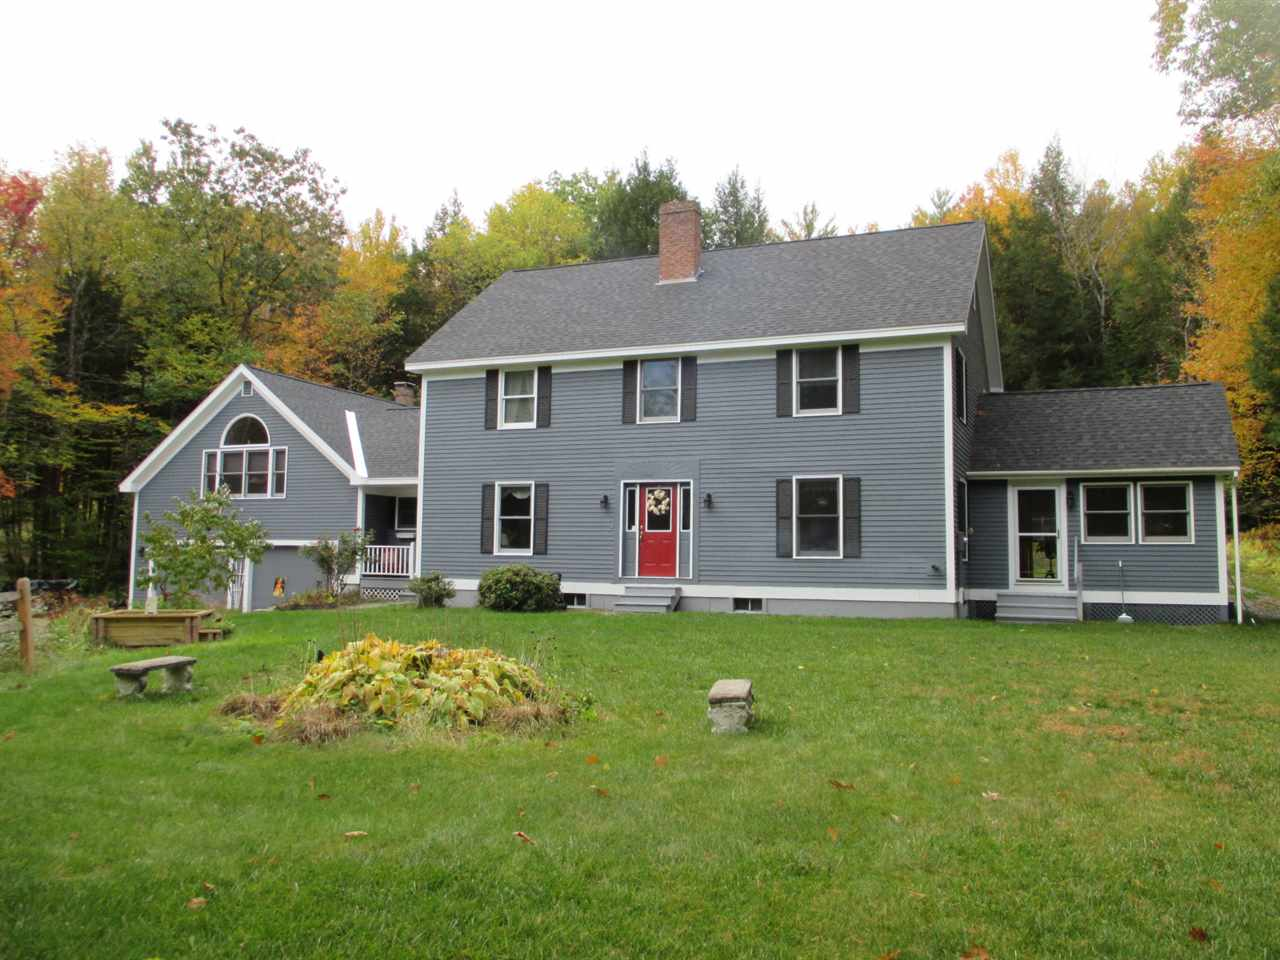 MLS 4796016: 126 Route 12A, Surry NH